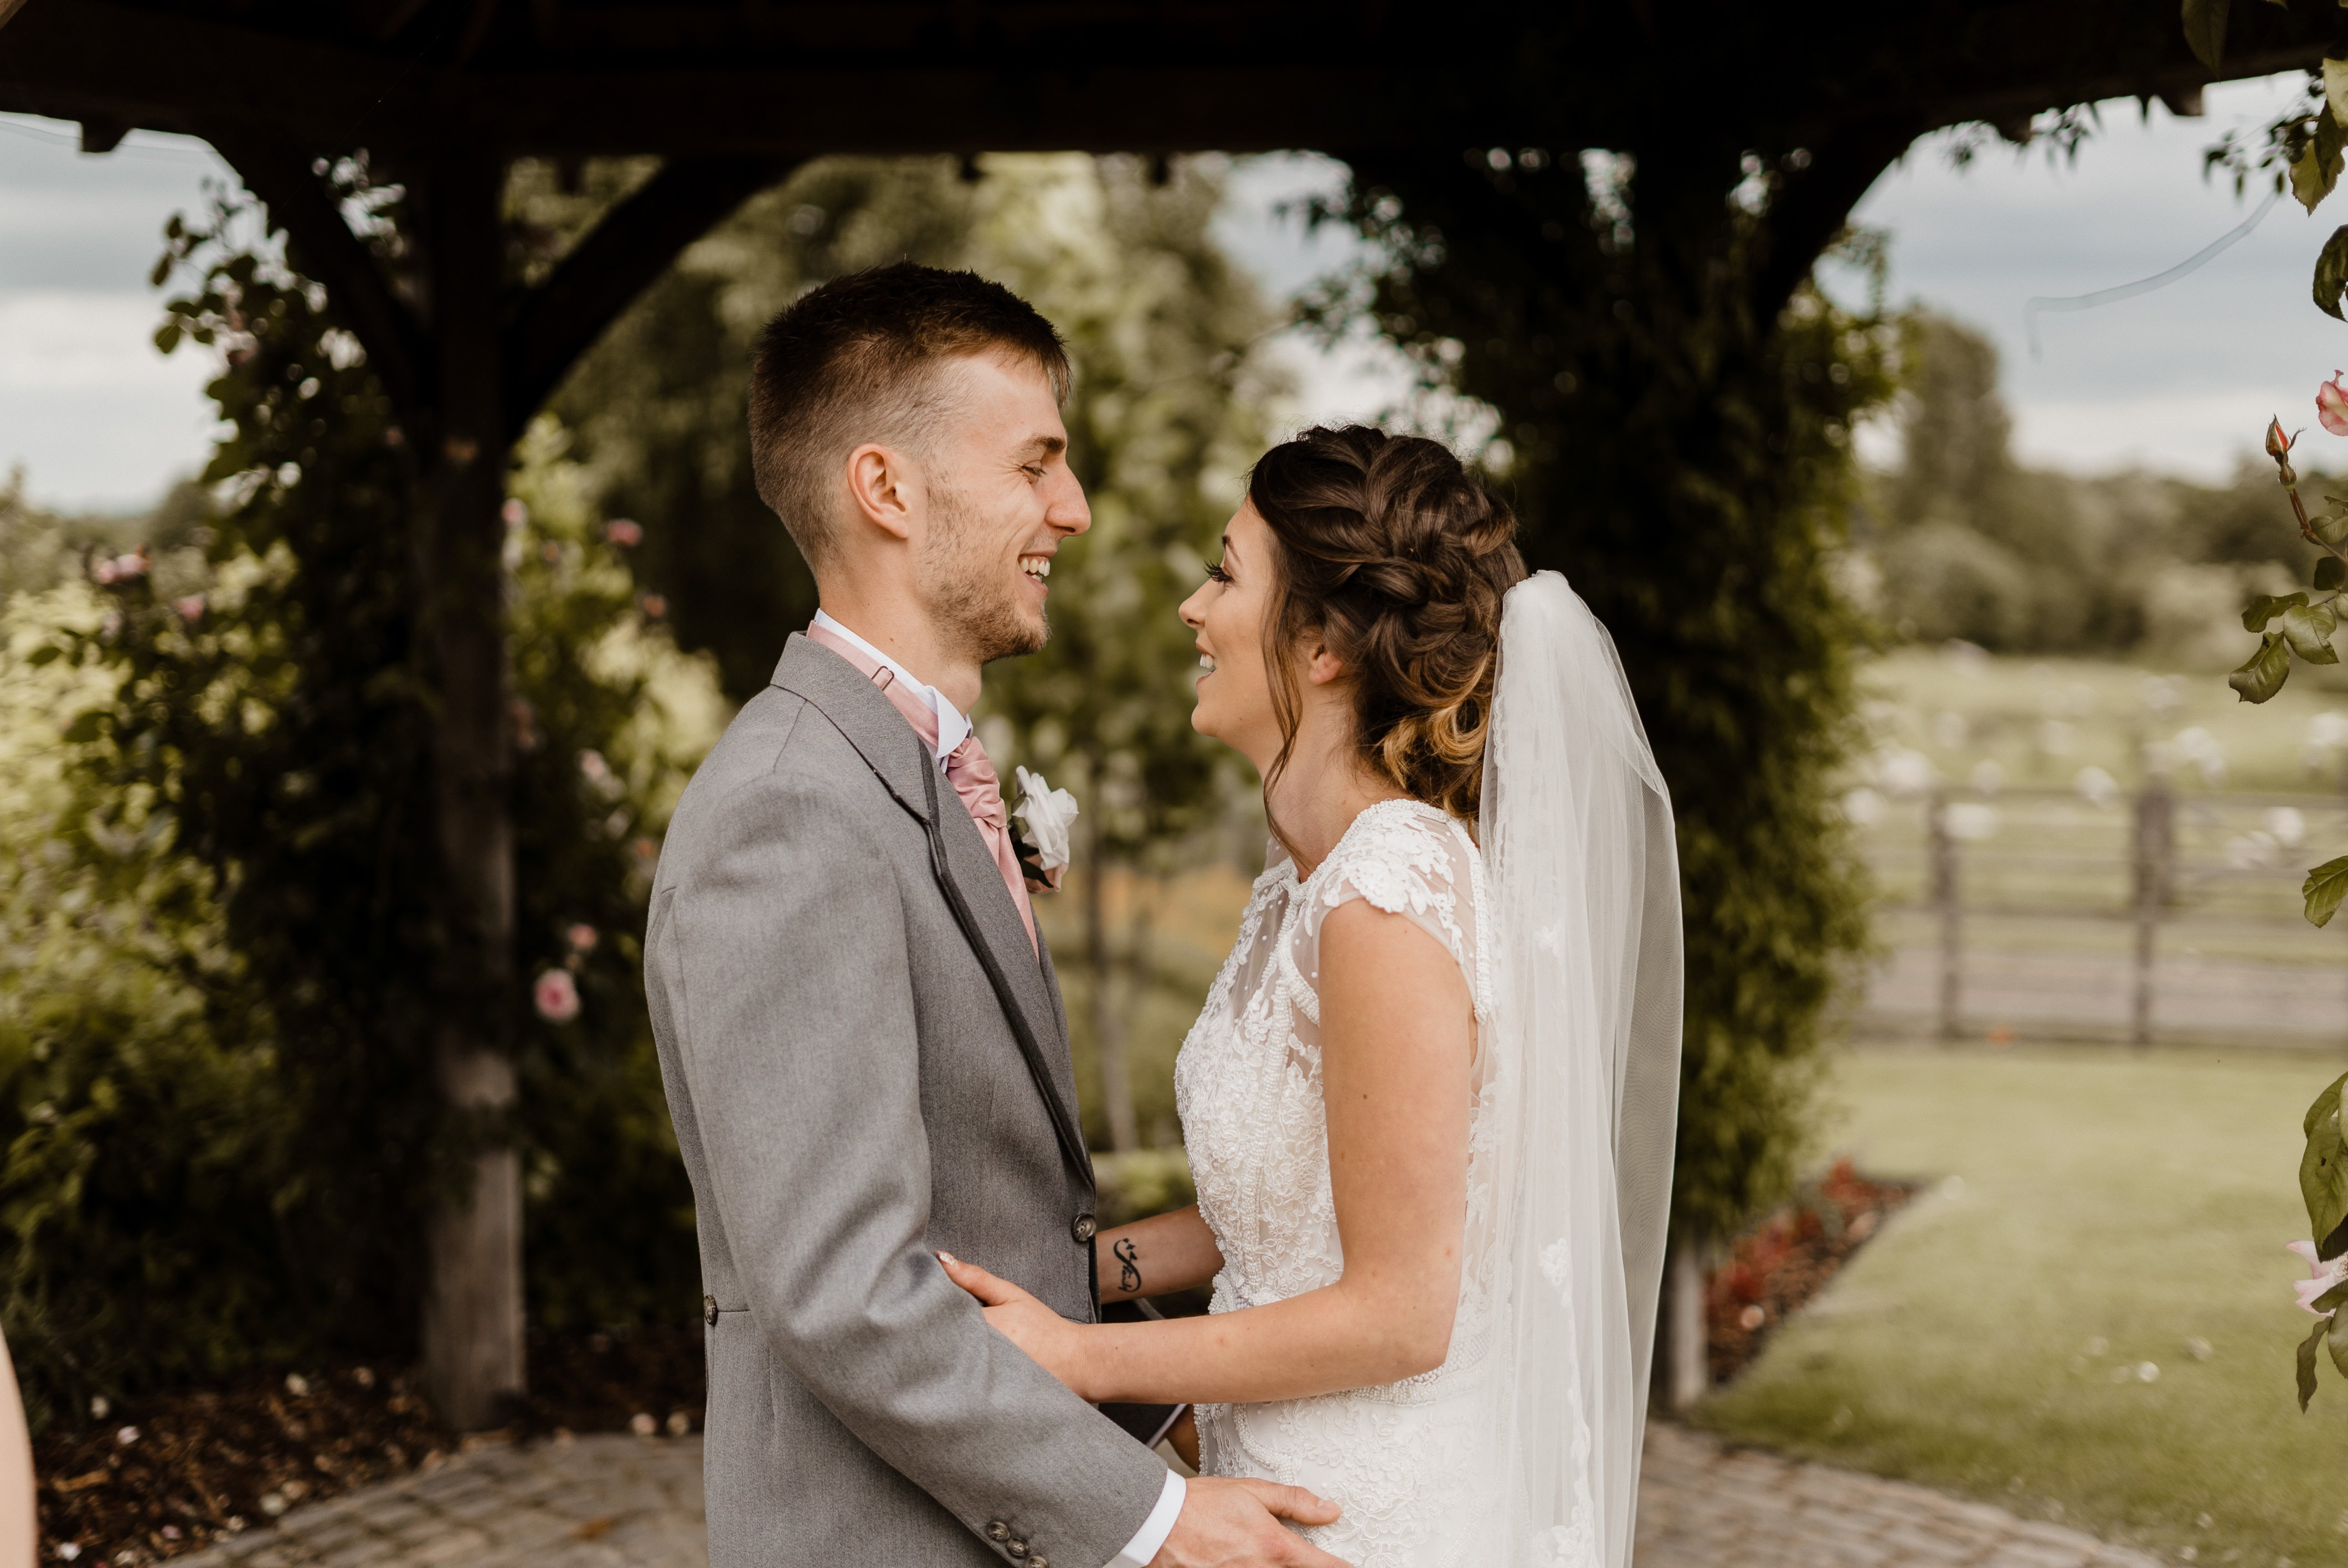 Sneak Peek - Sheryl & Sam Mythe Barn Wedding Ceremony 13